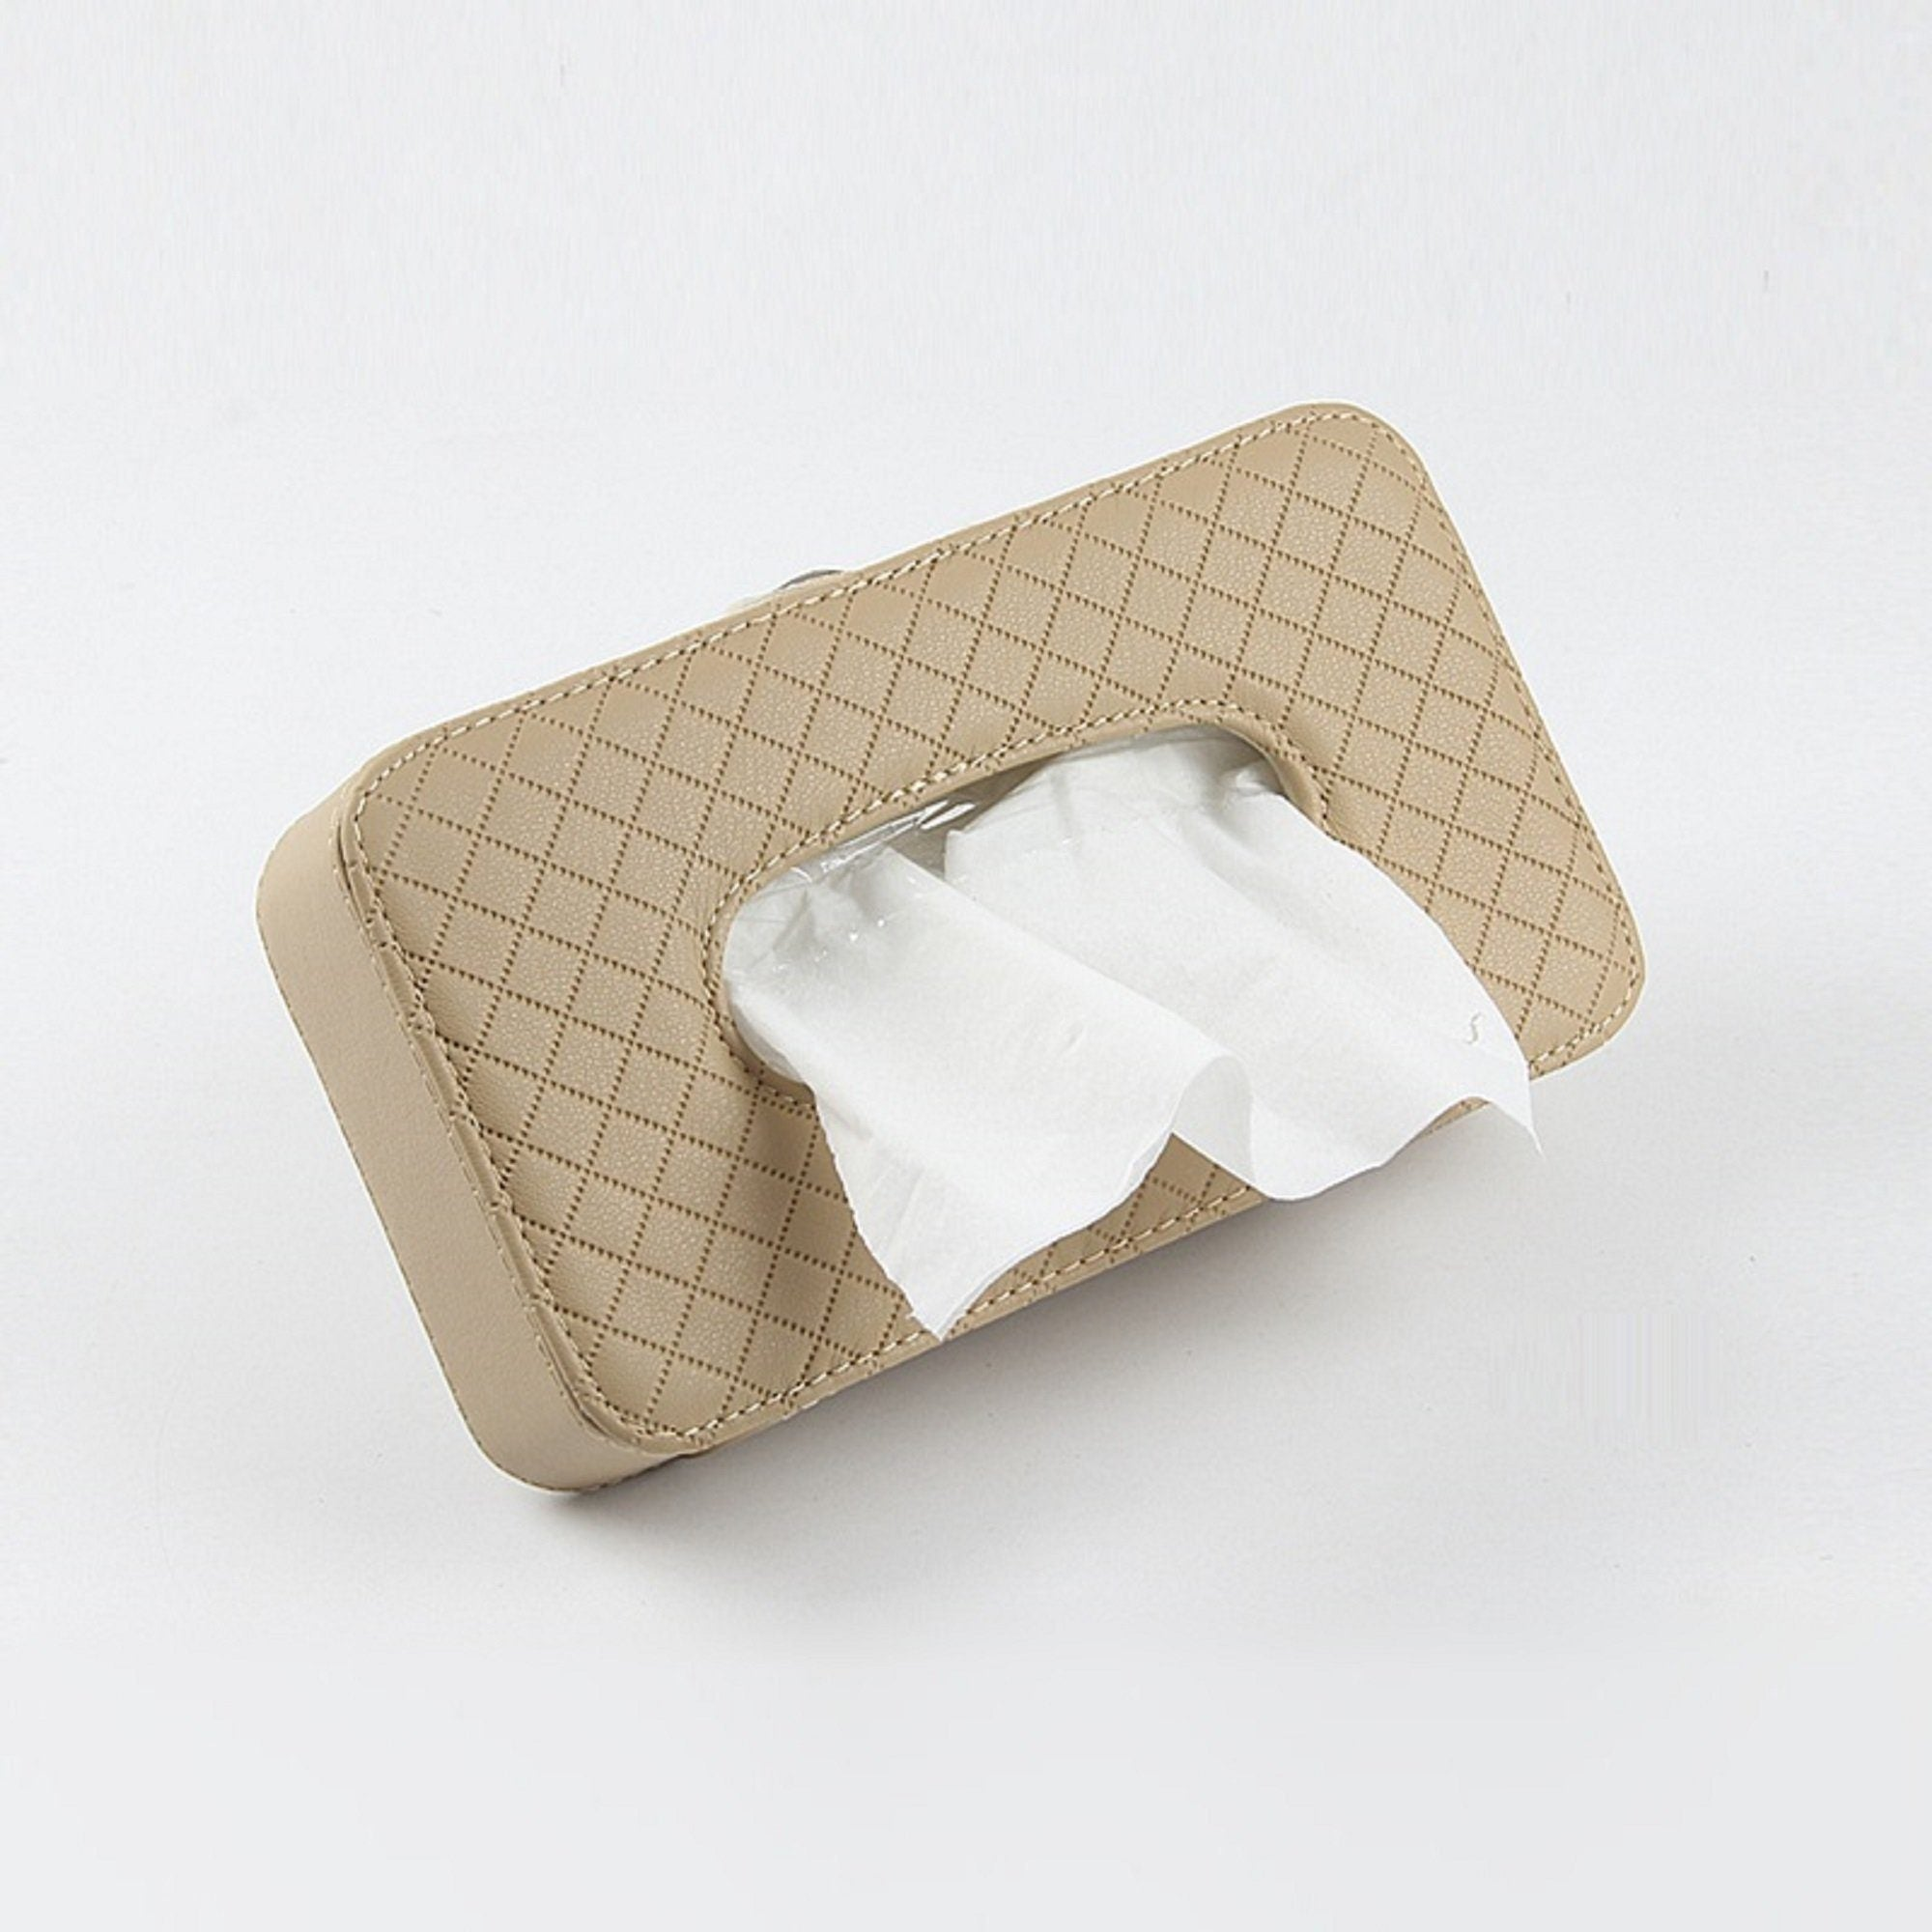 Leather Car Tissue Box - Visor Type